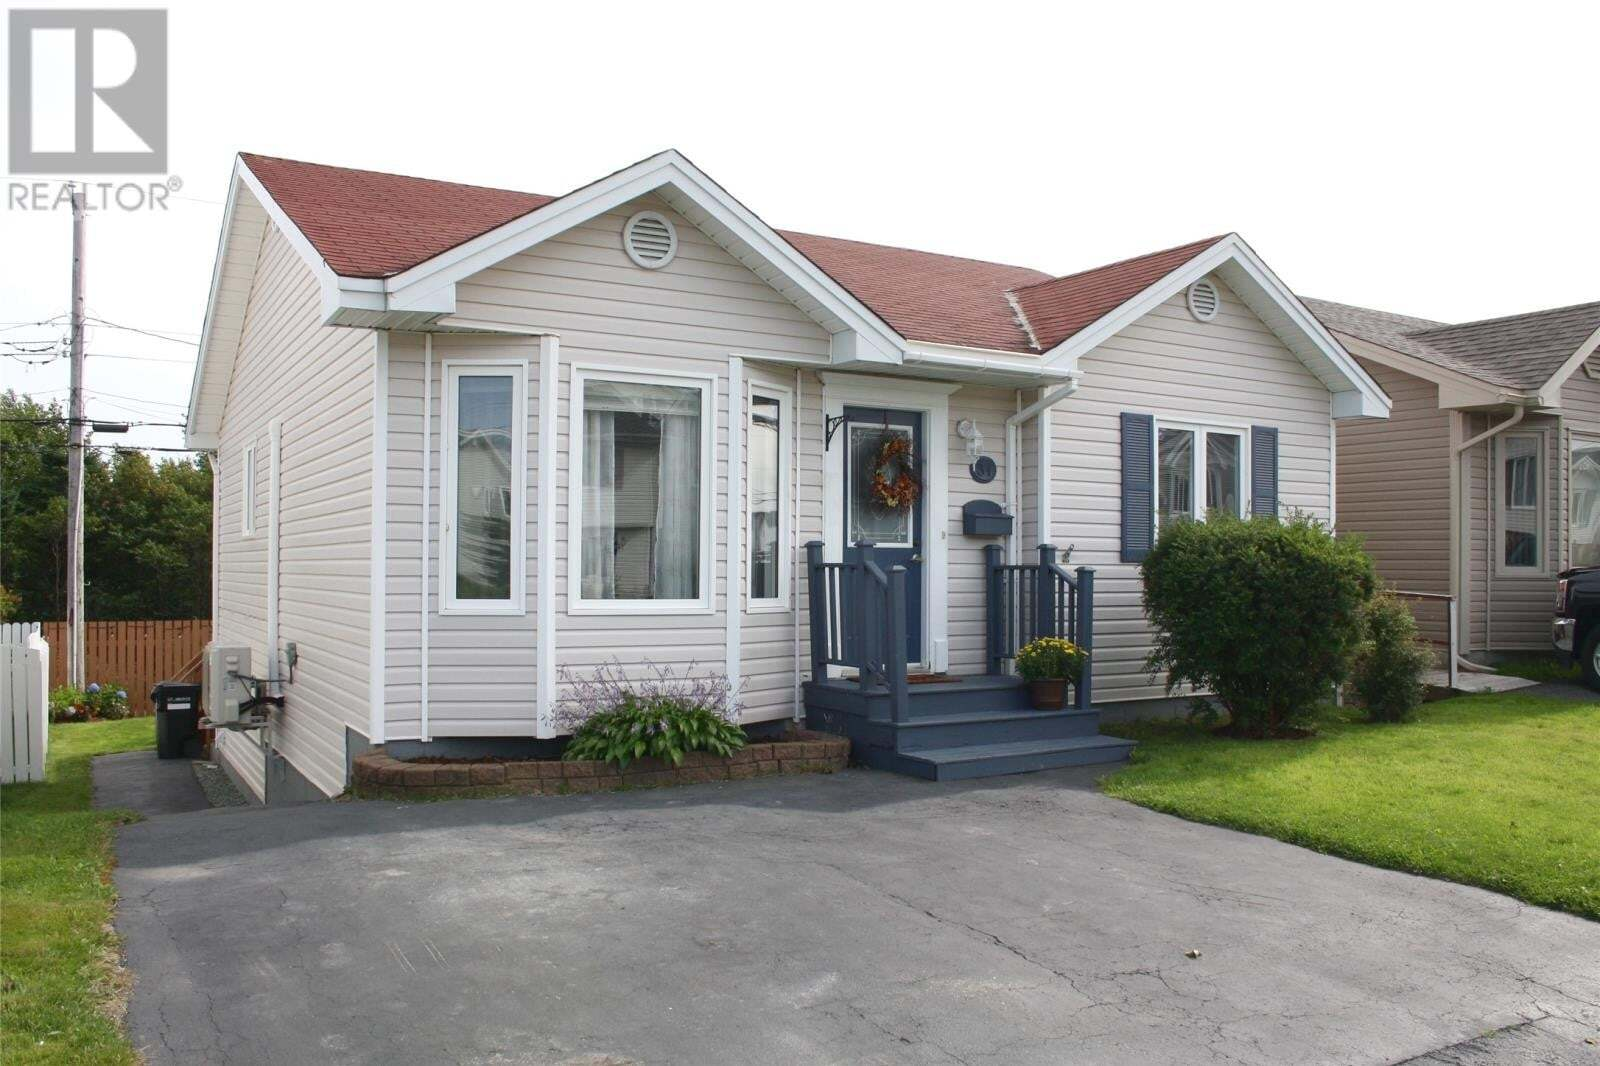 House for sale at 31 Winslow St St. John's Newfoundland - MLS: 1221335